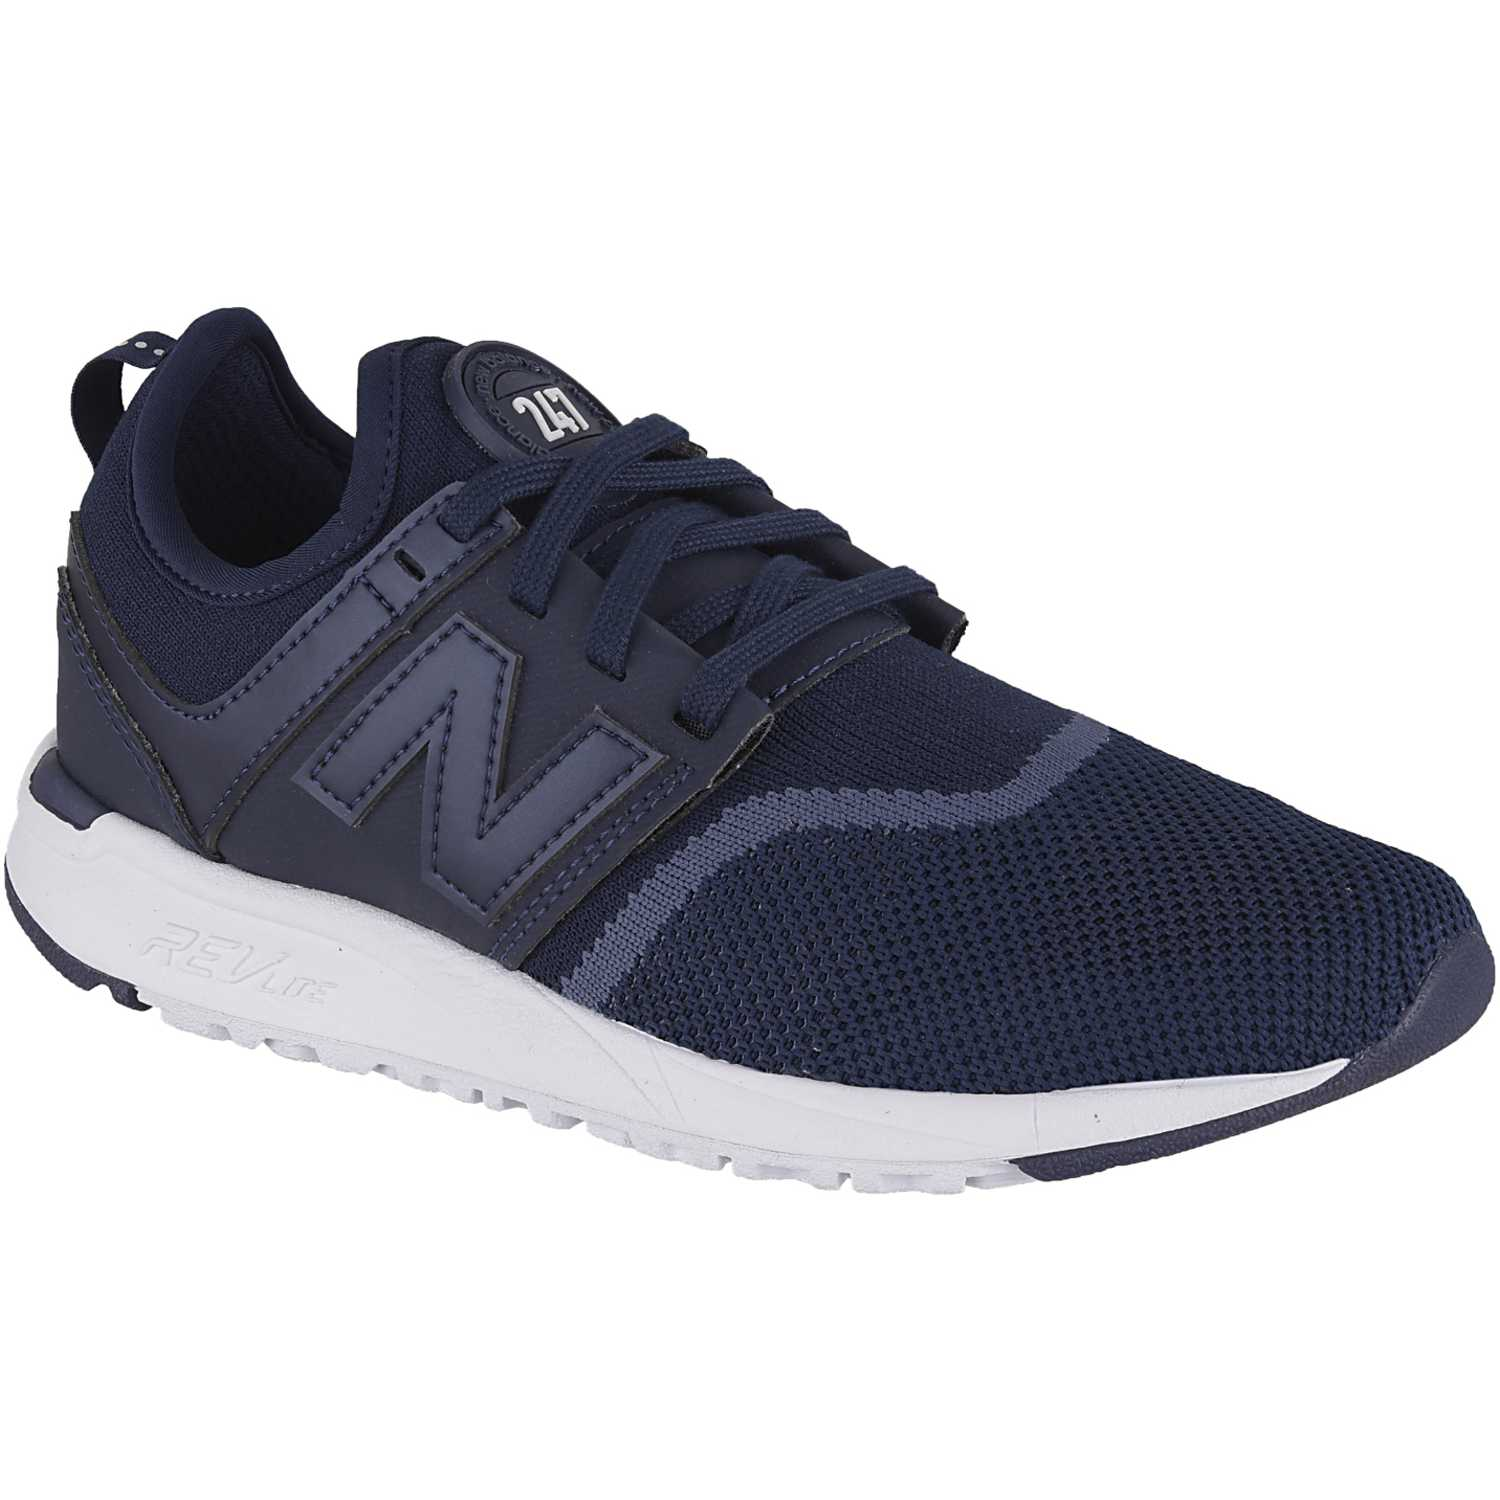 New Balance 247 Acero / blanco Walking